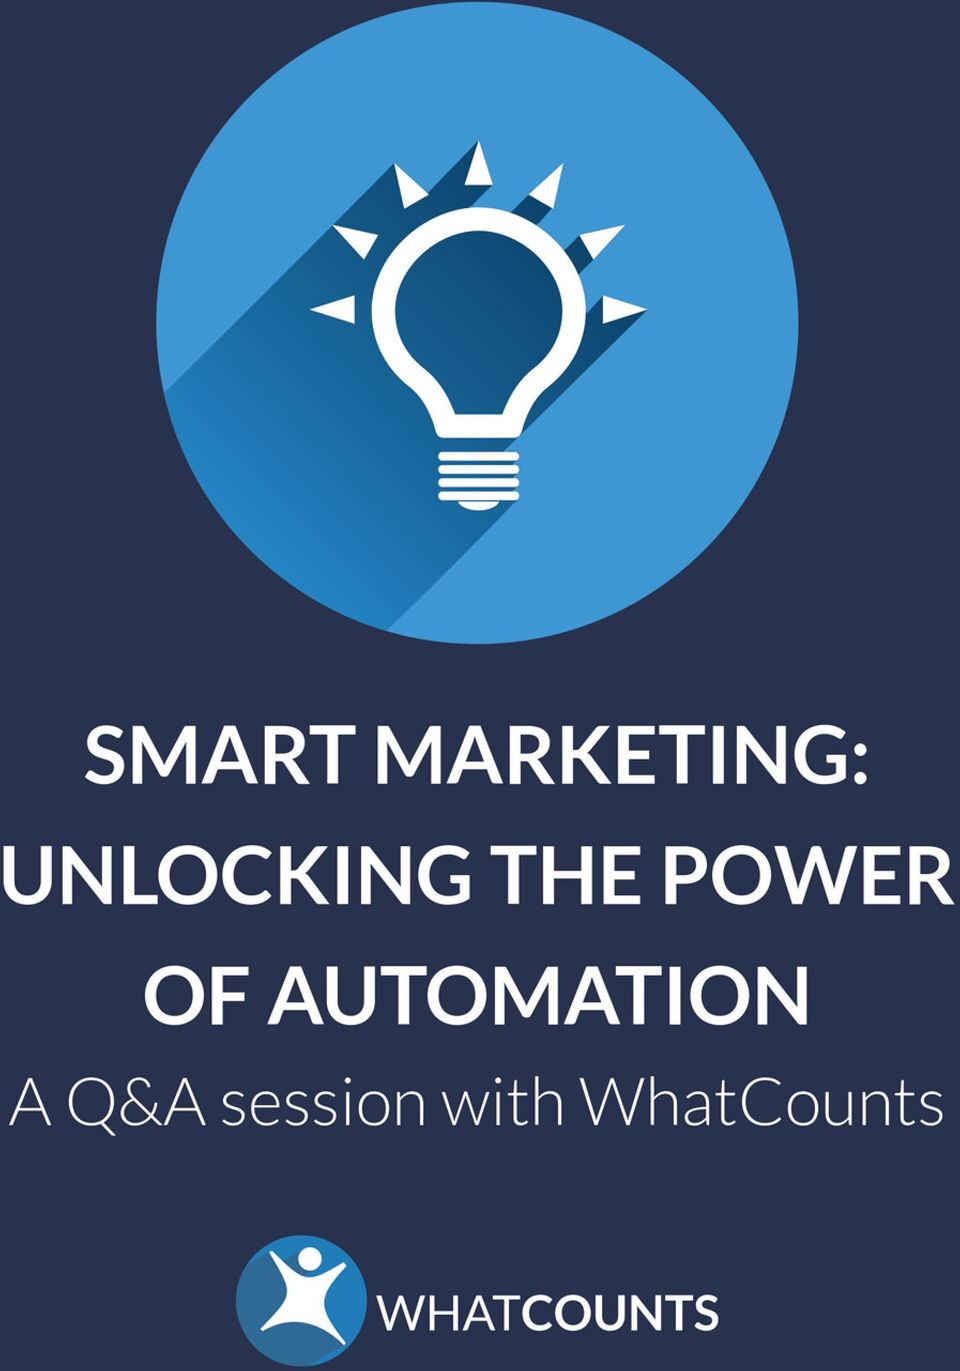 OF AUTOMATION A Q&A